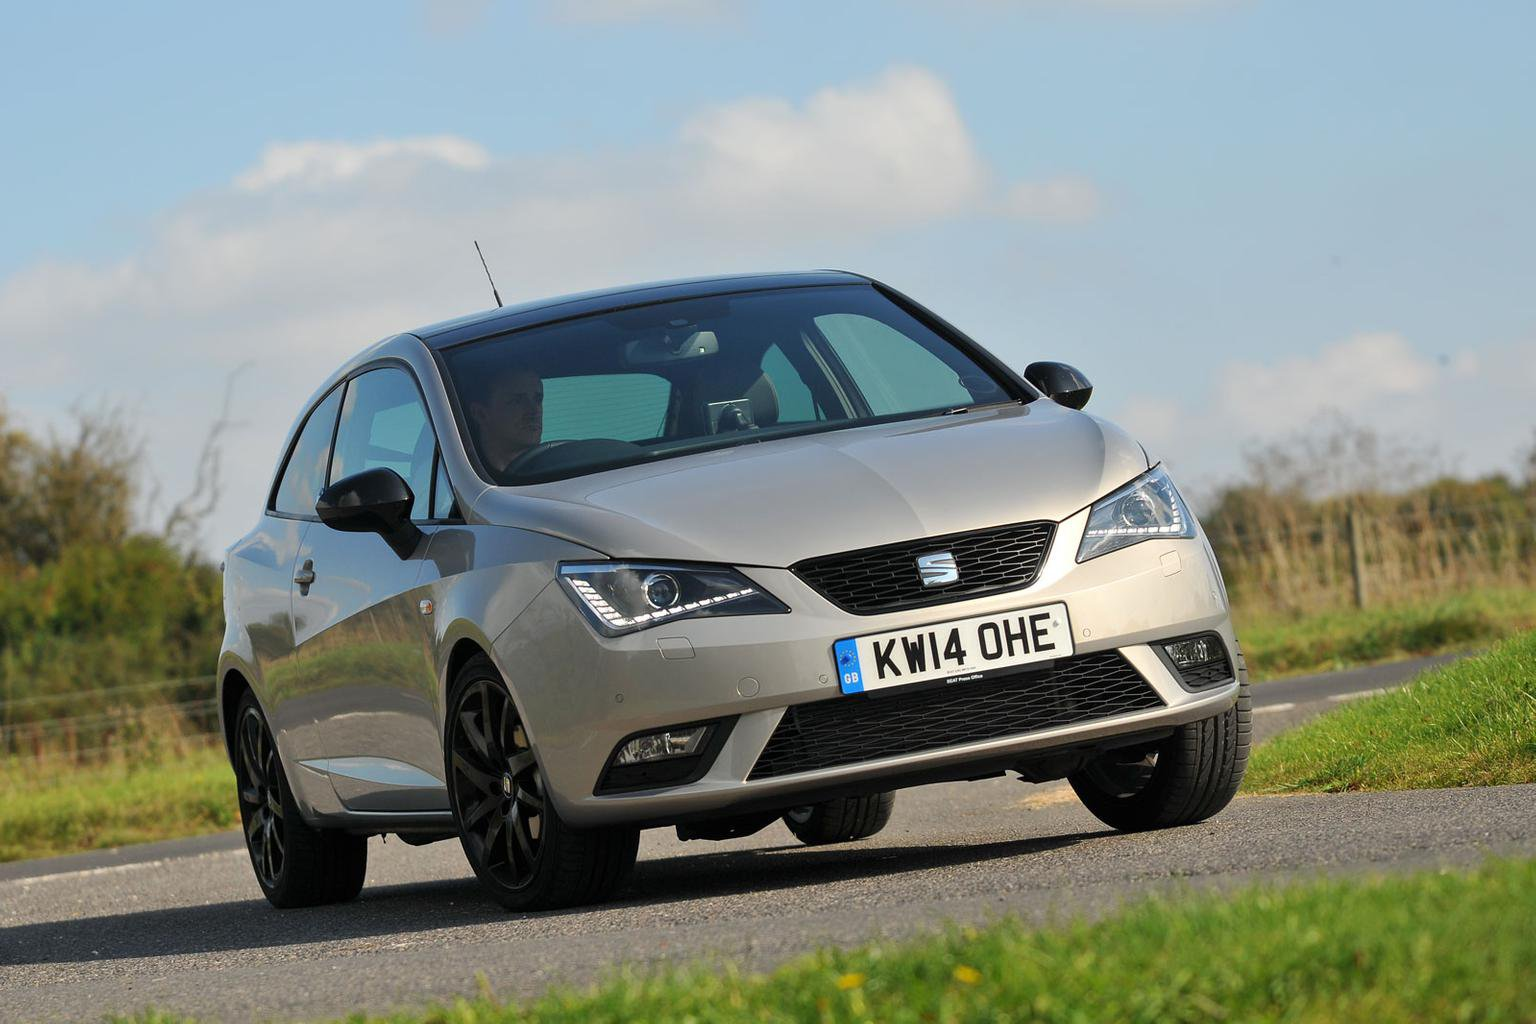 2014 Seat Ibiza 30 Years Edition review